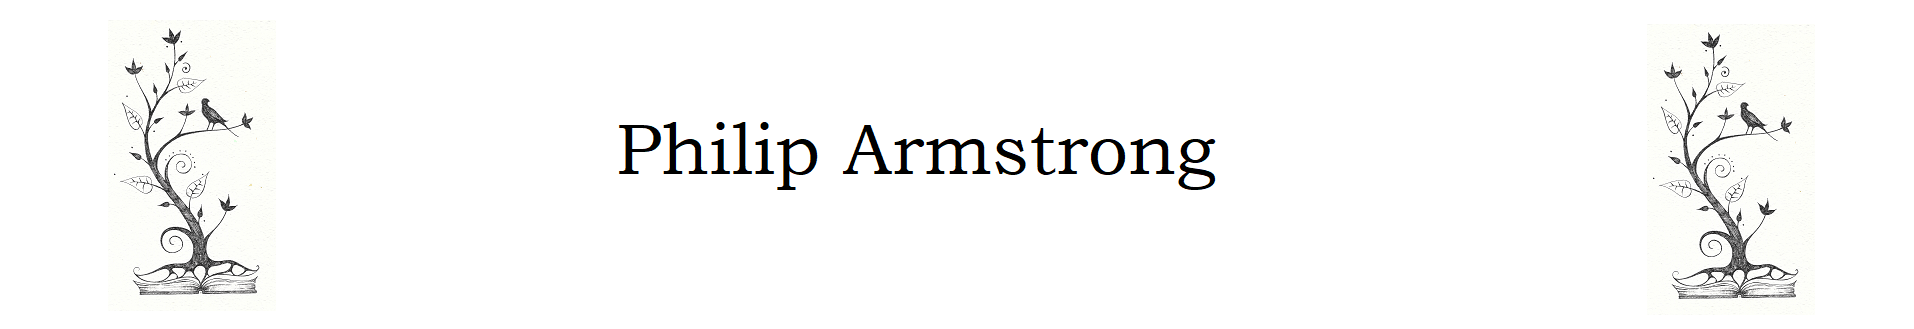 Philip Armstrong